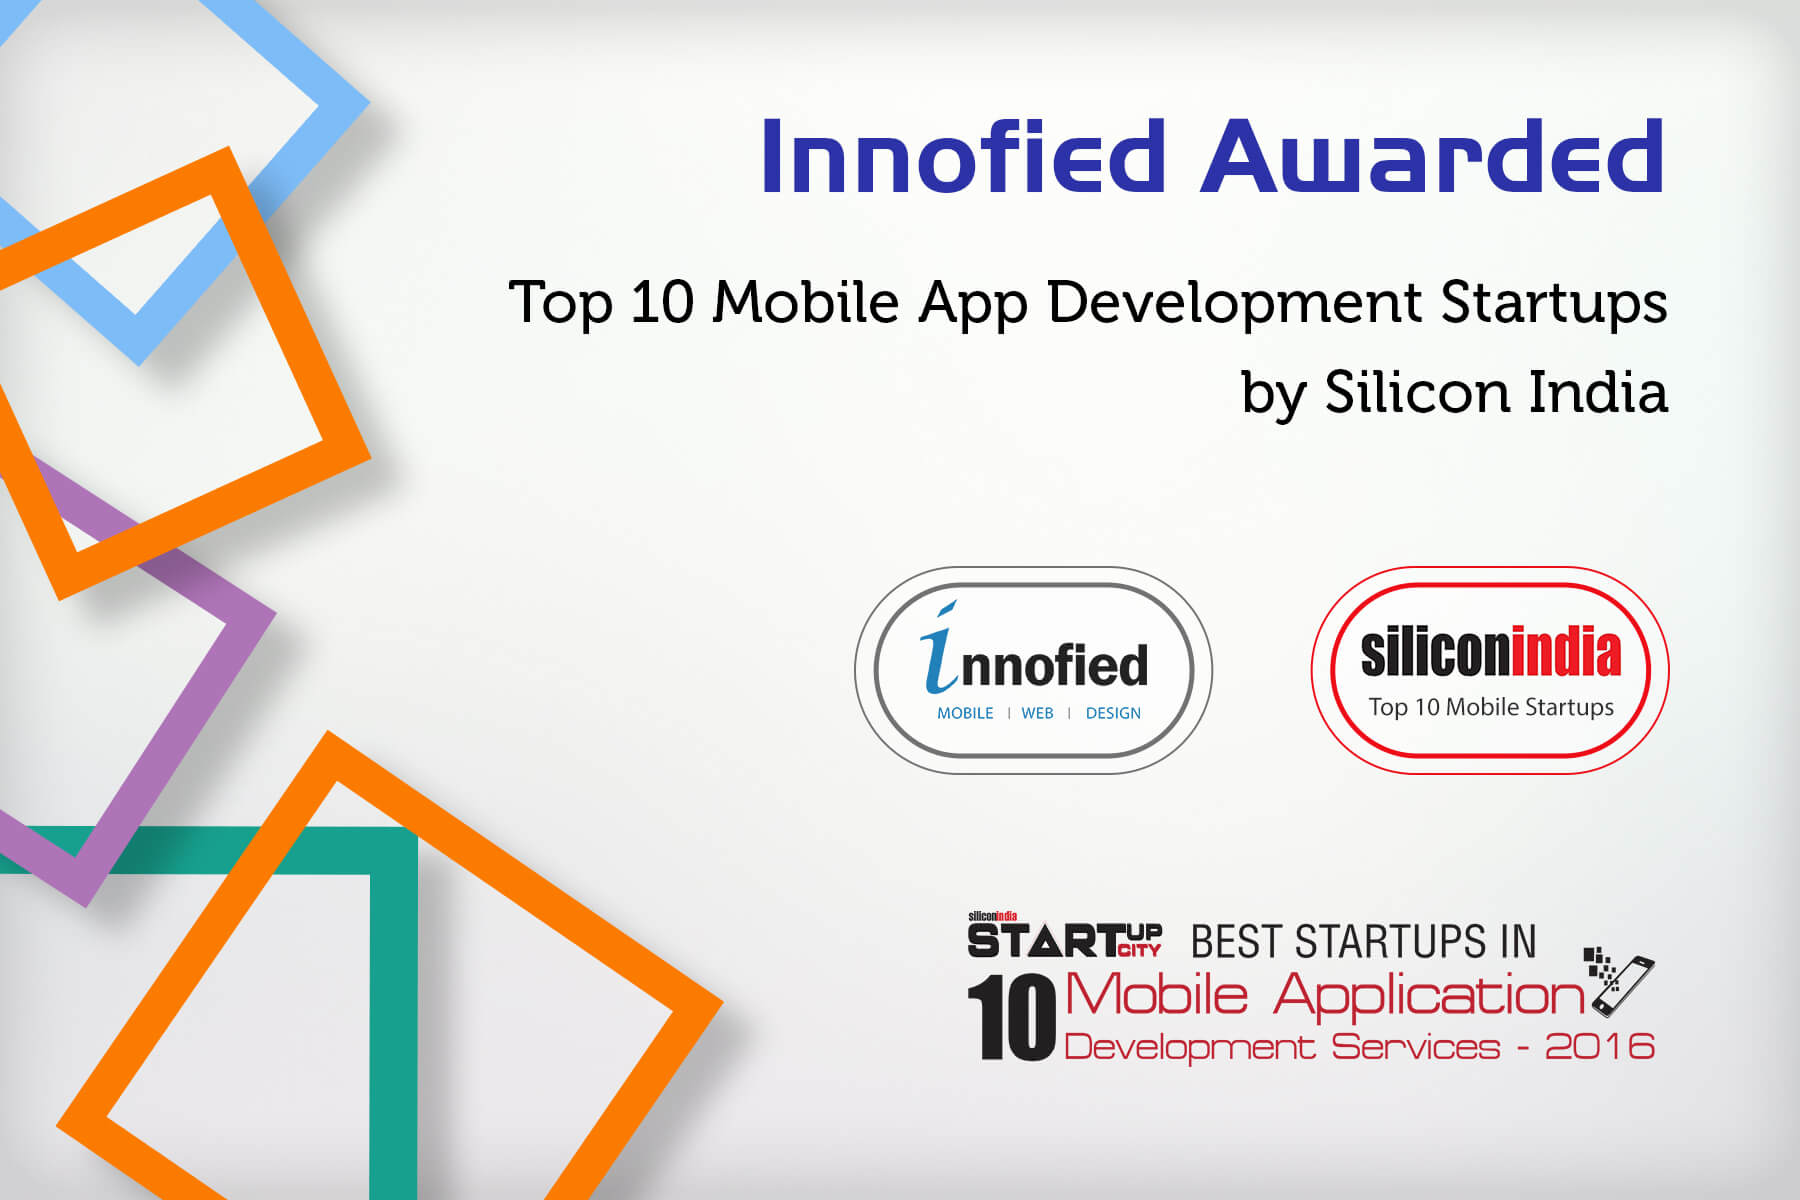 Silicon India award for Innofied in mobile application development services